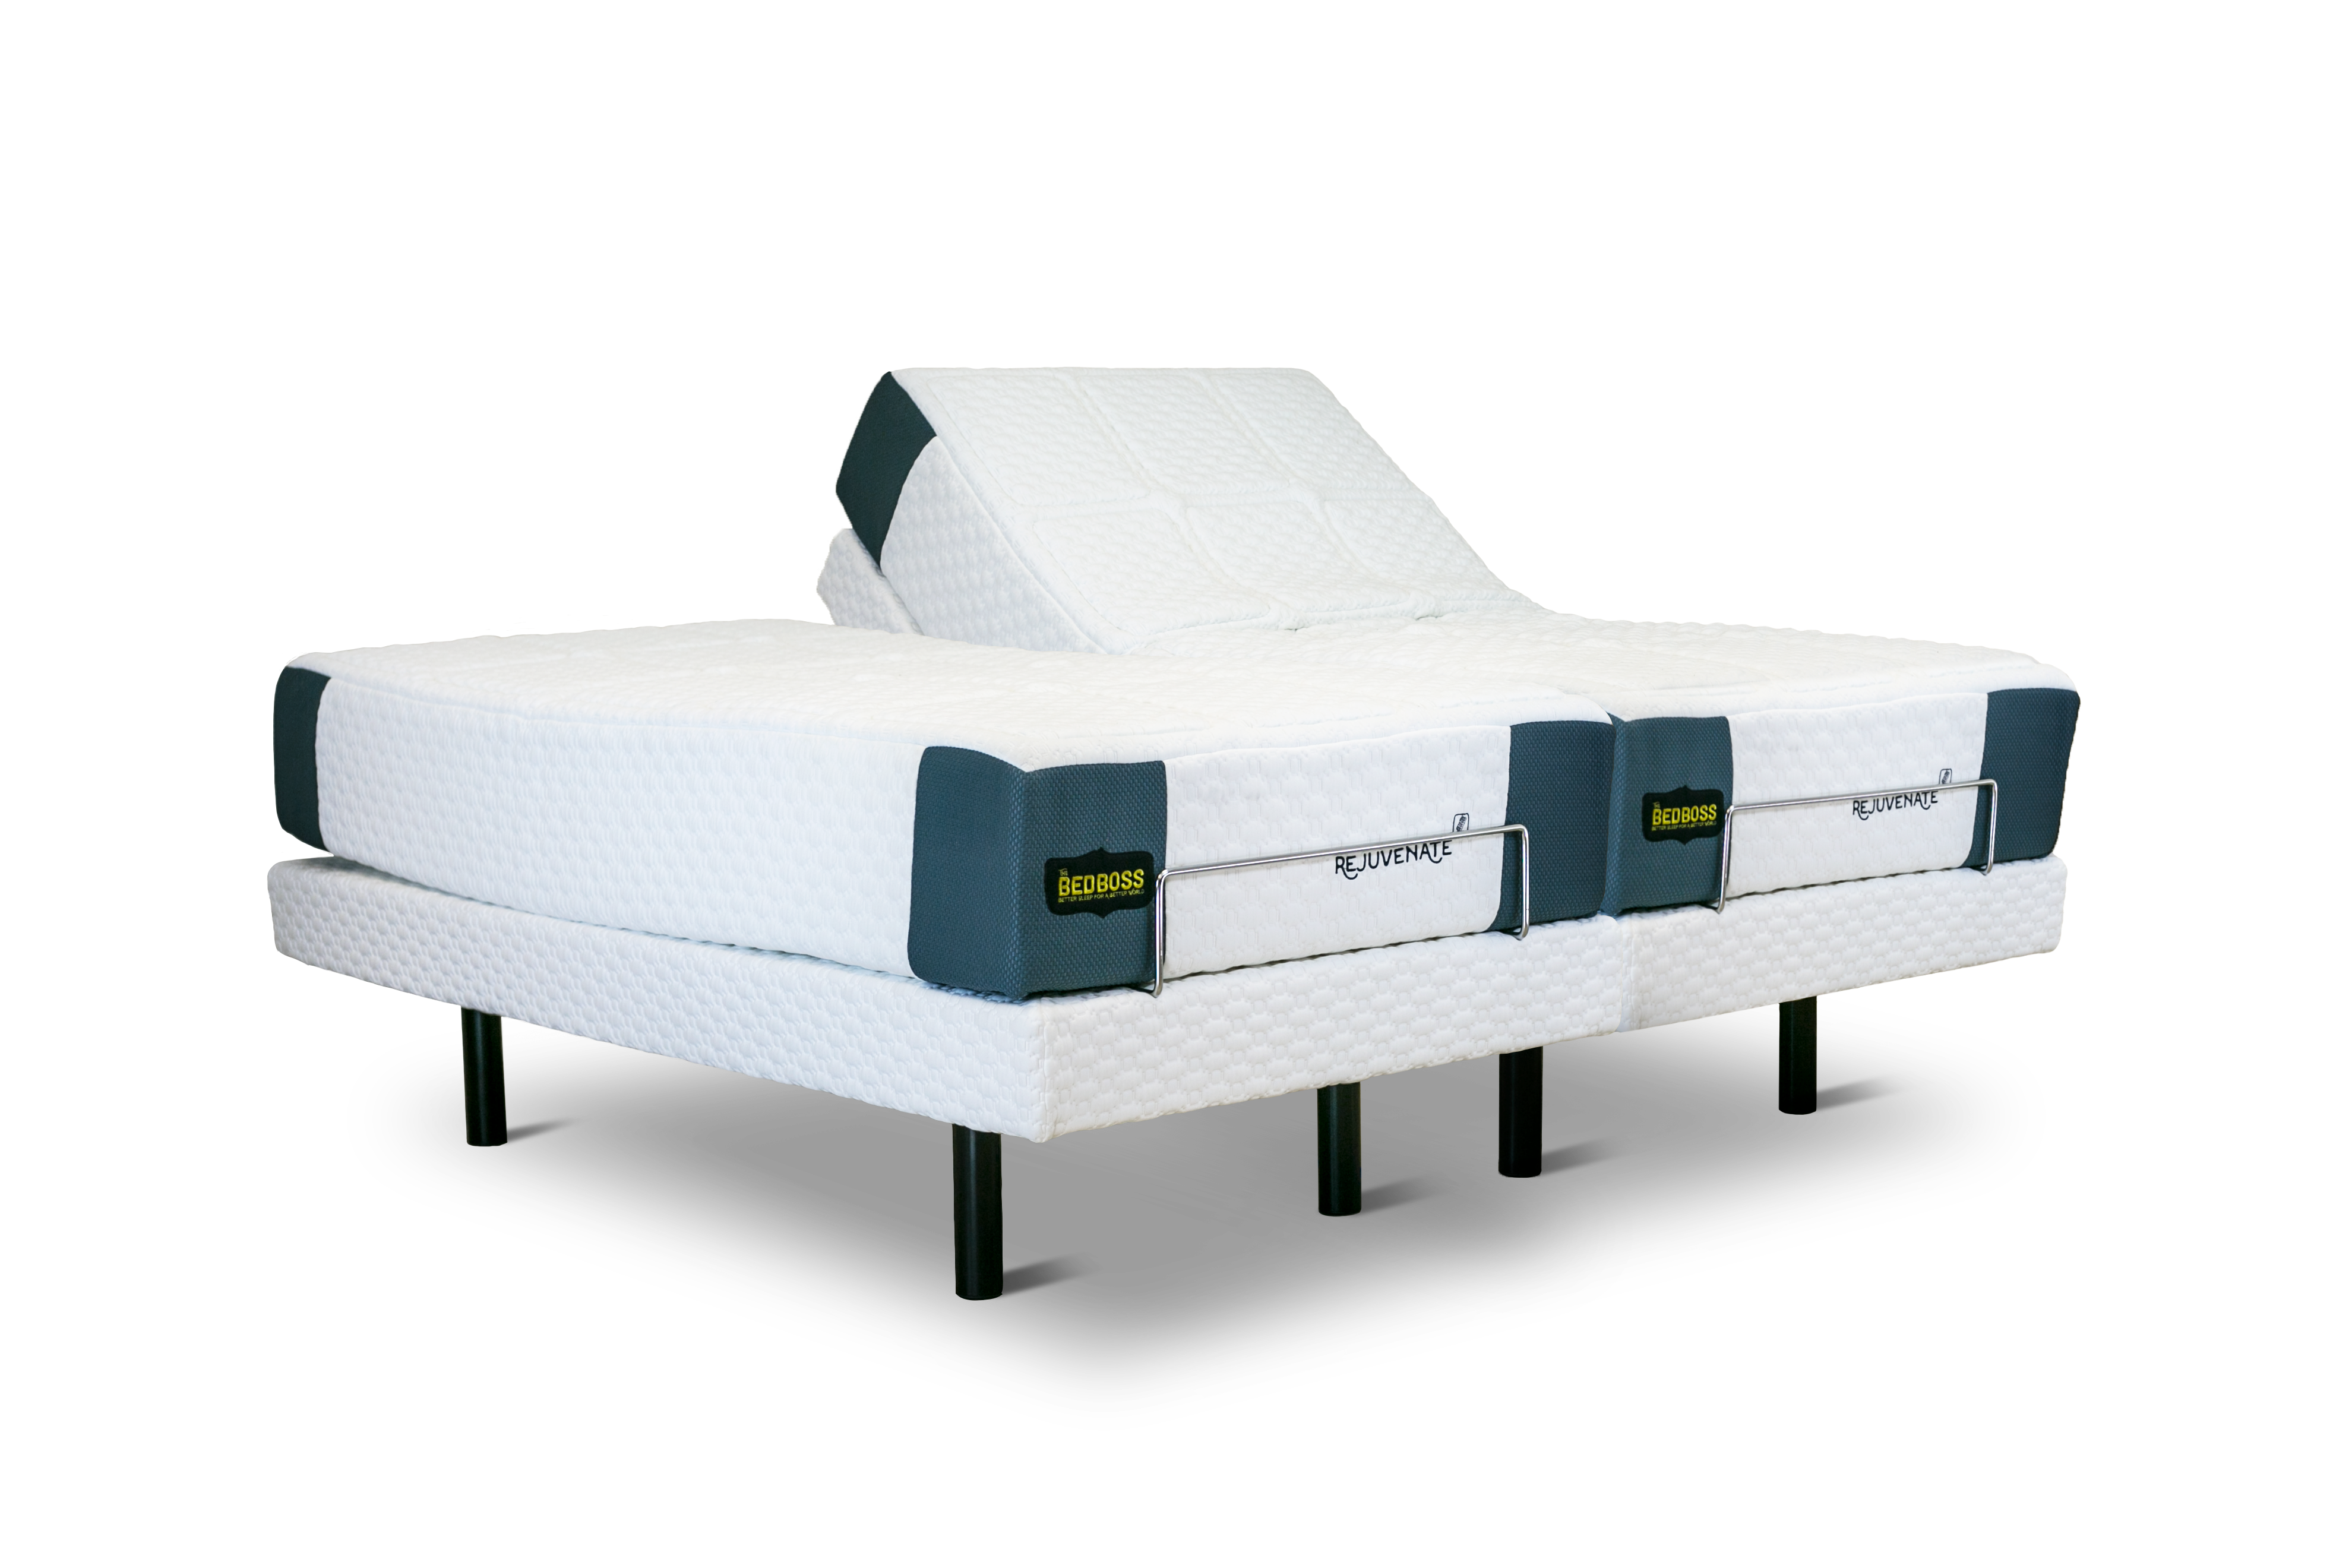 memory foam hybrid mattresses pillows chattanooga the bed boss - Mattress Without Box Spring